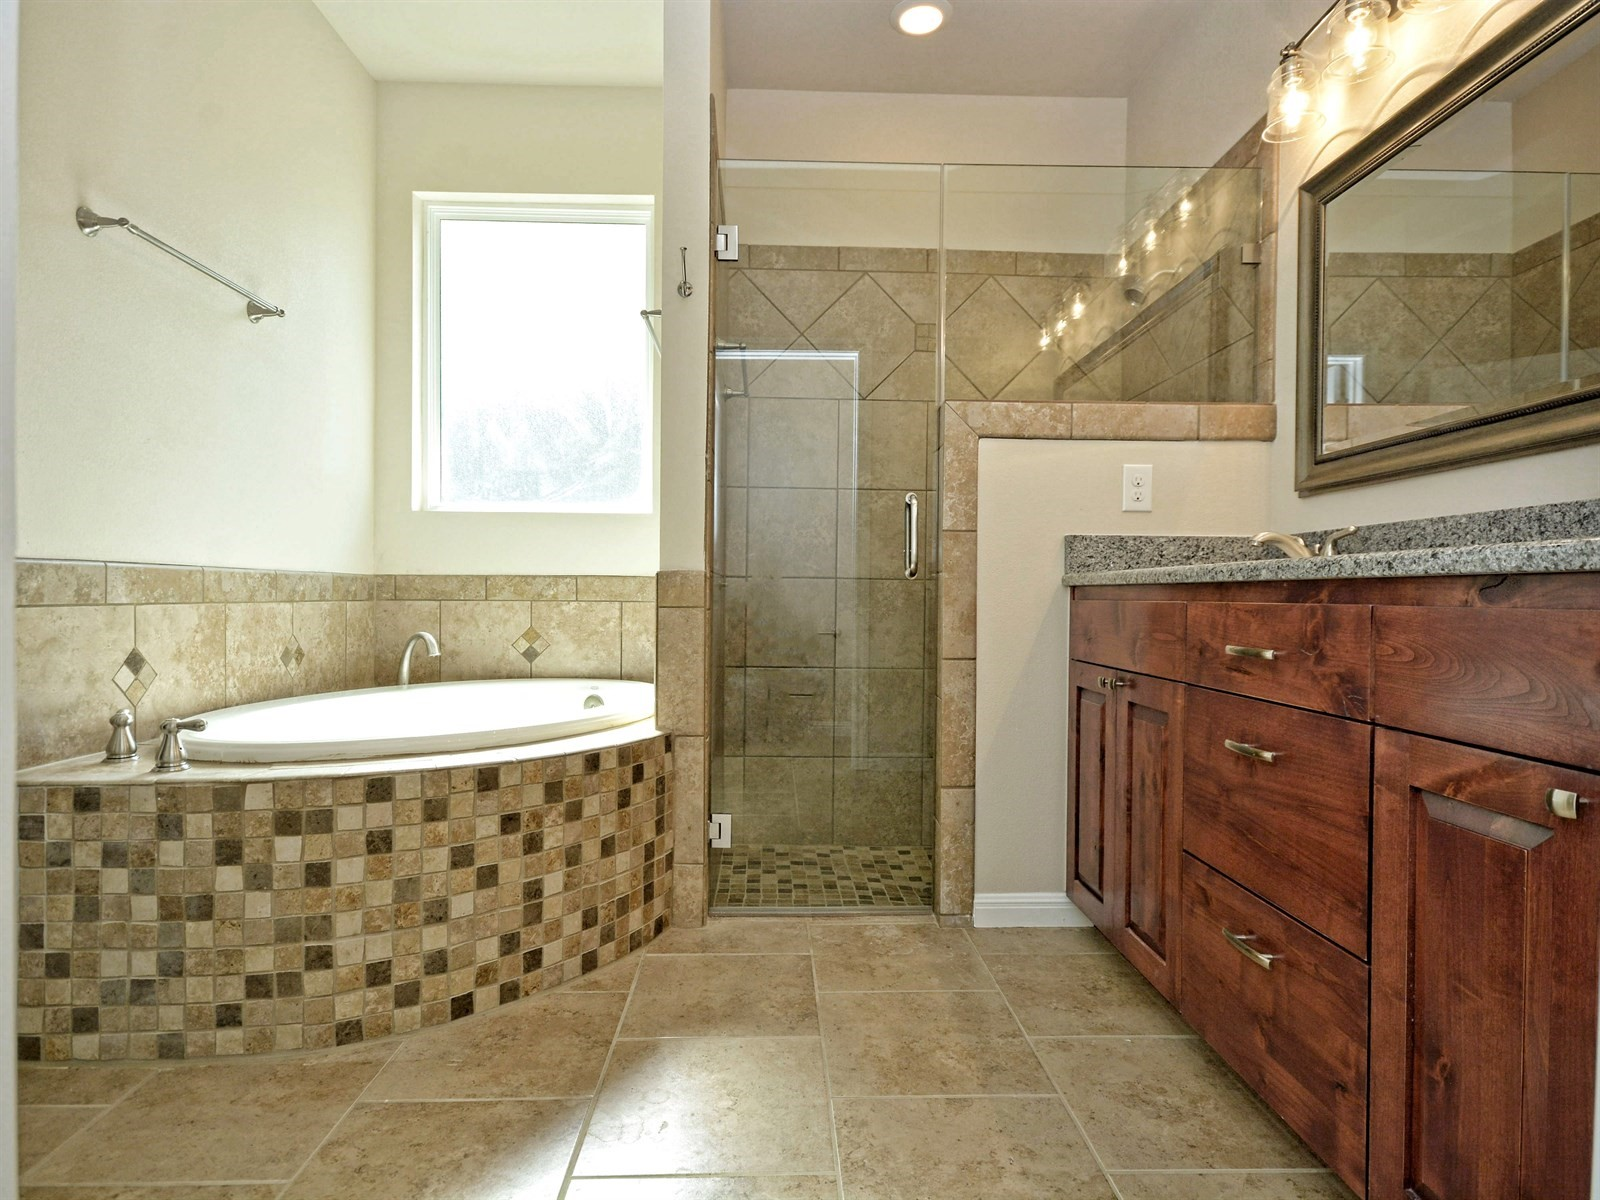 023_Master Bathroom 2     .jpg